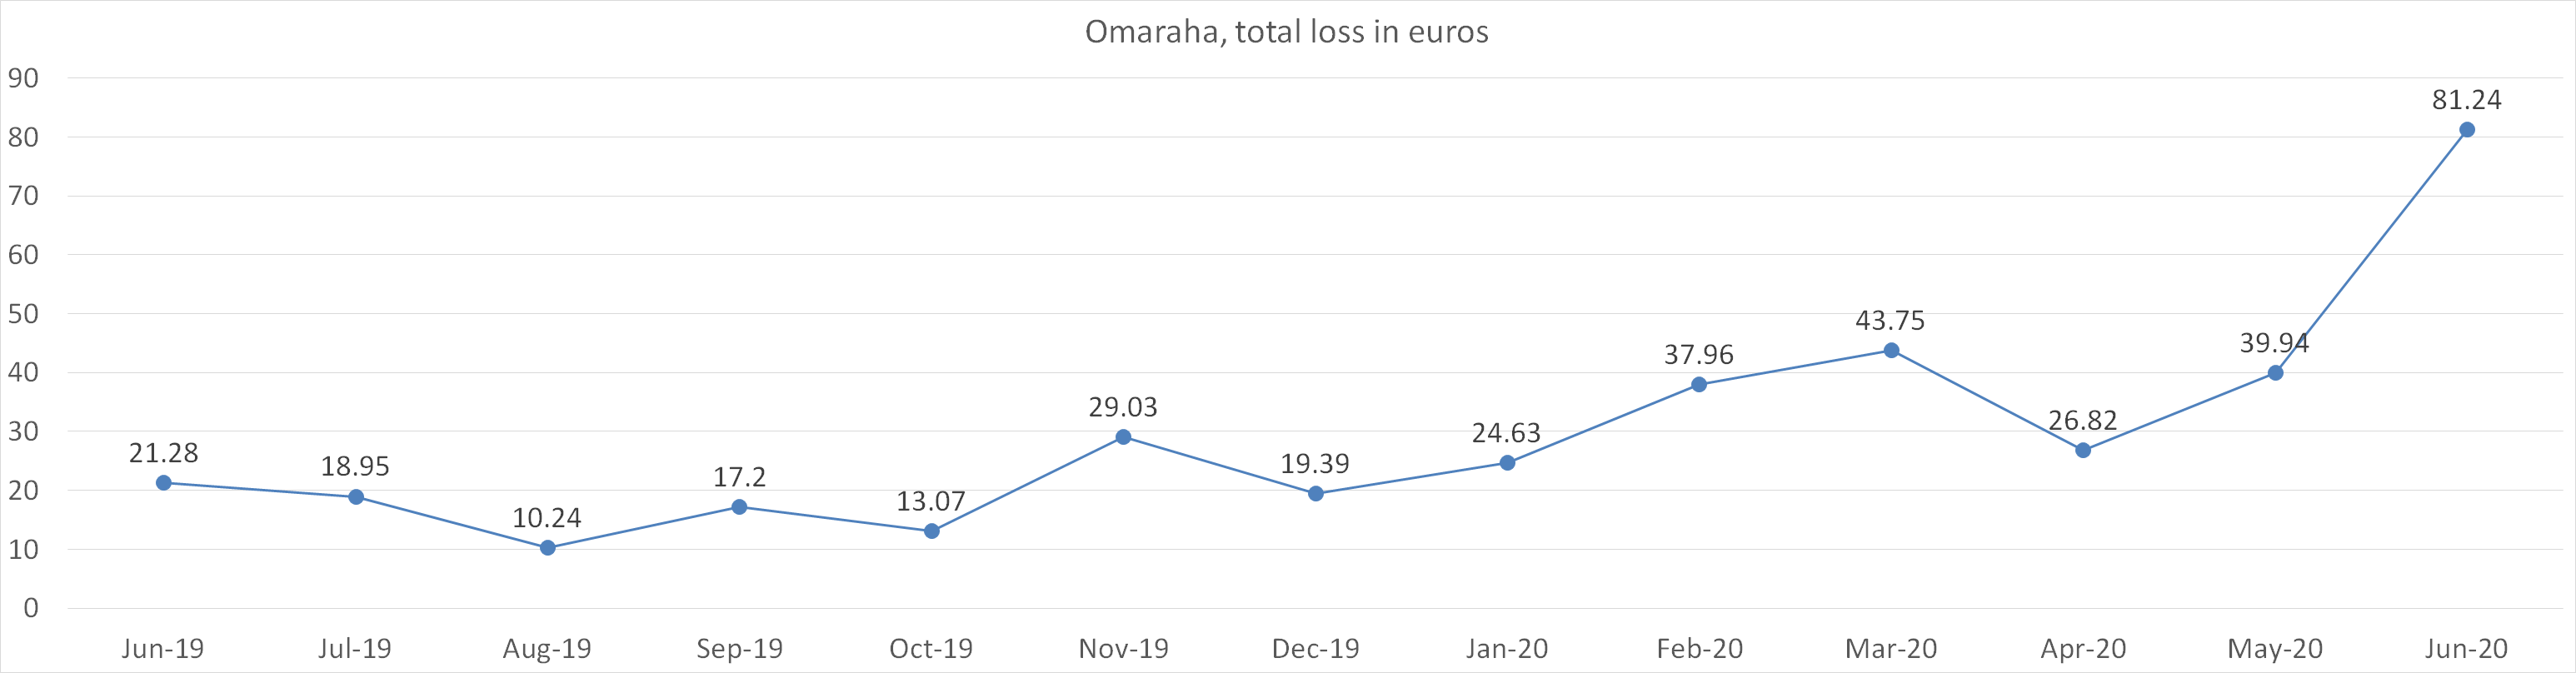 Omaraha total loss in euros june 2020